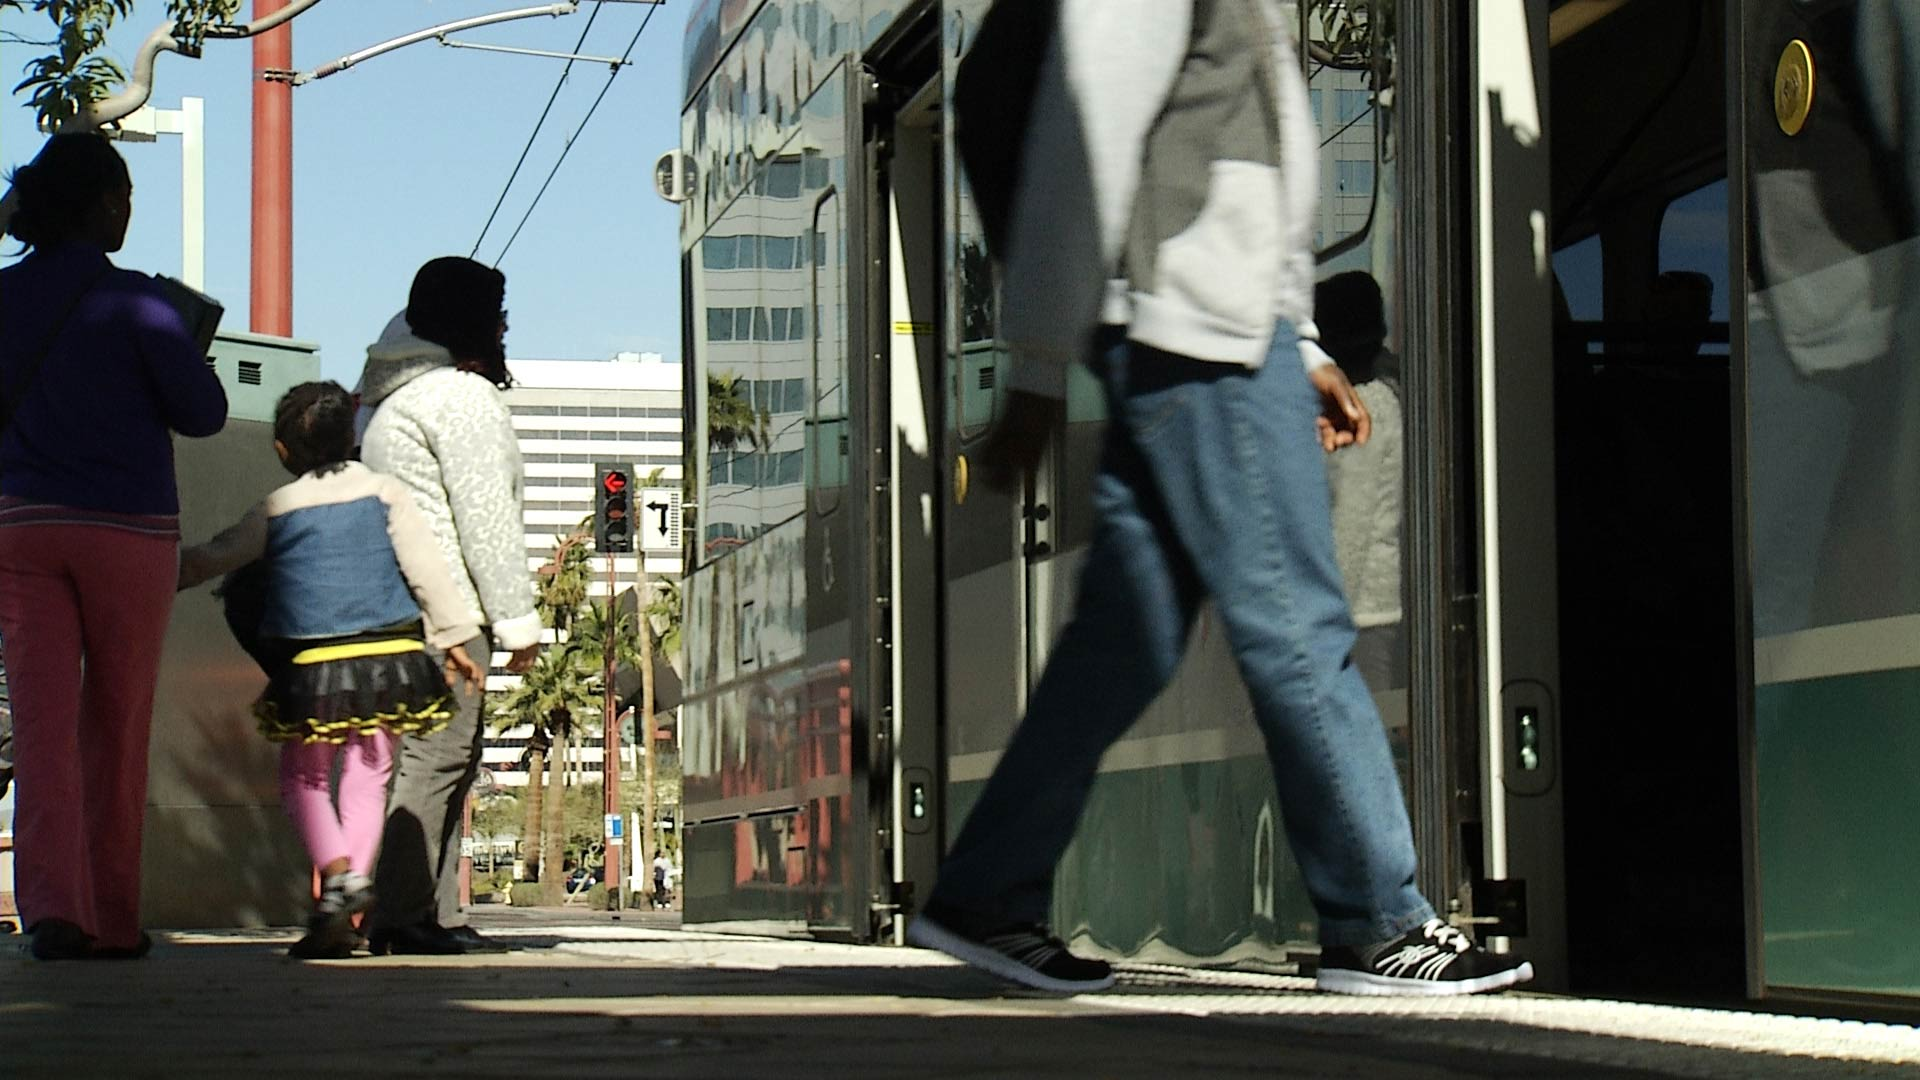 Riders board the Phoenix light rail.